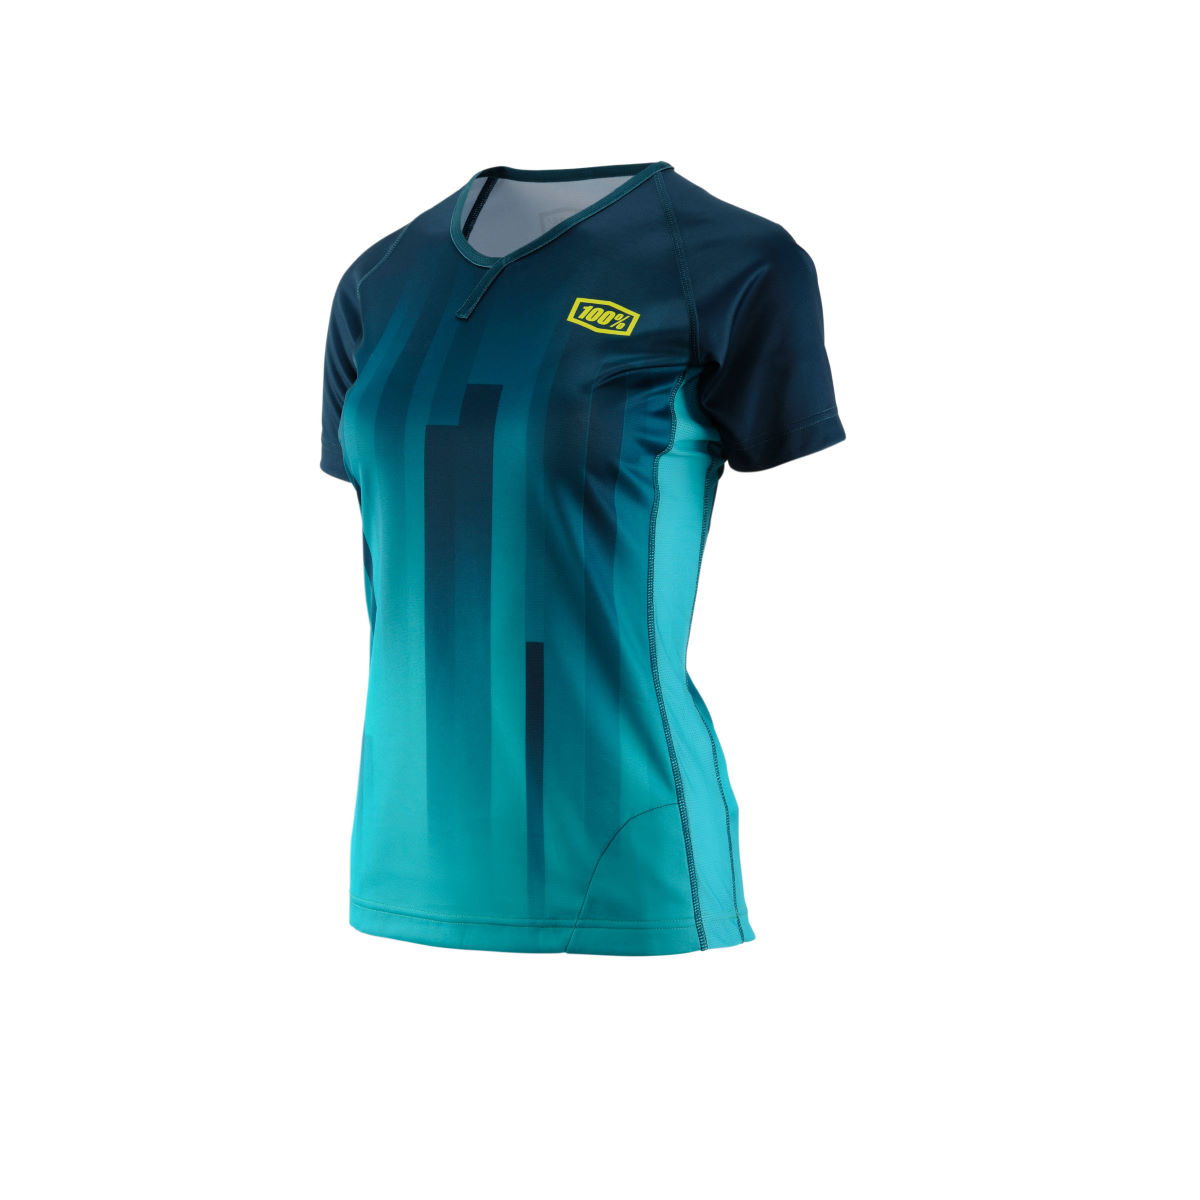 100% Women's Airmatic Jersey - Maillots